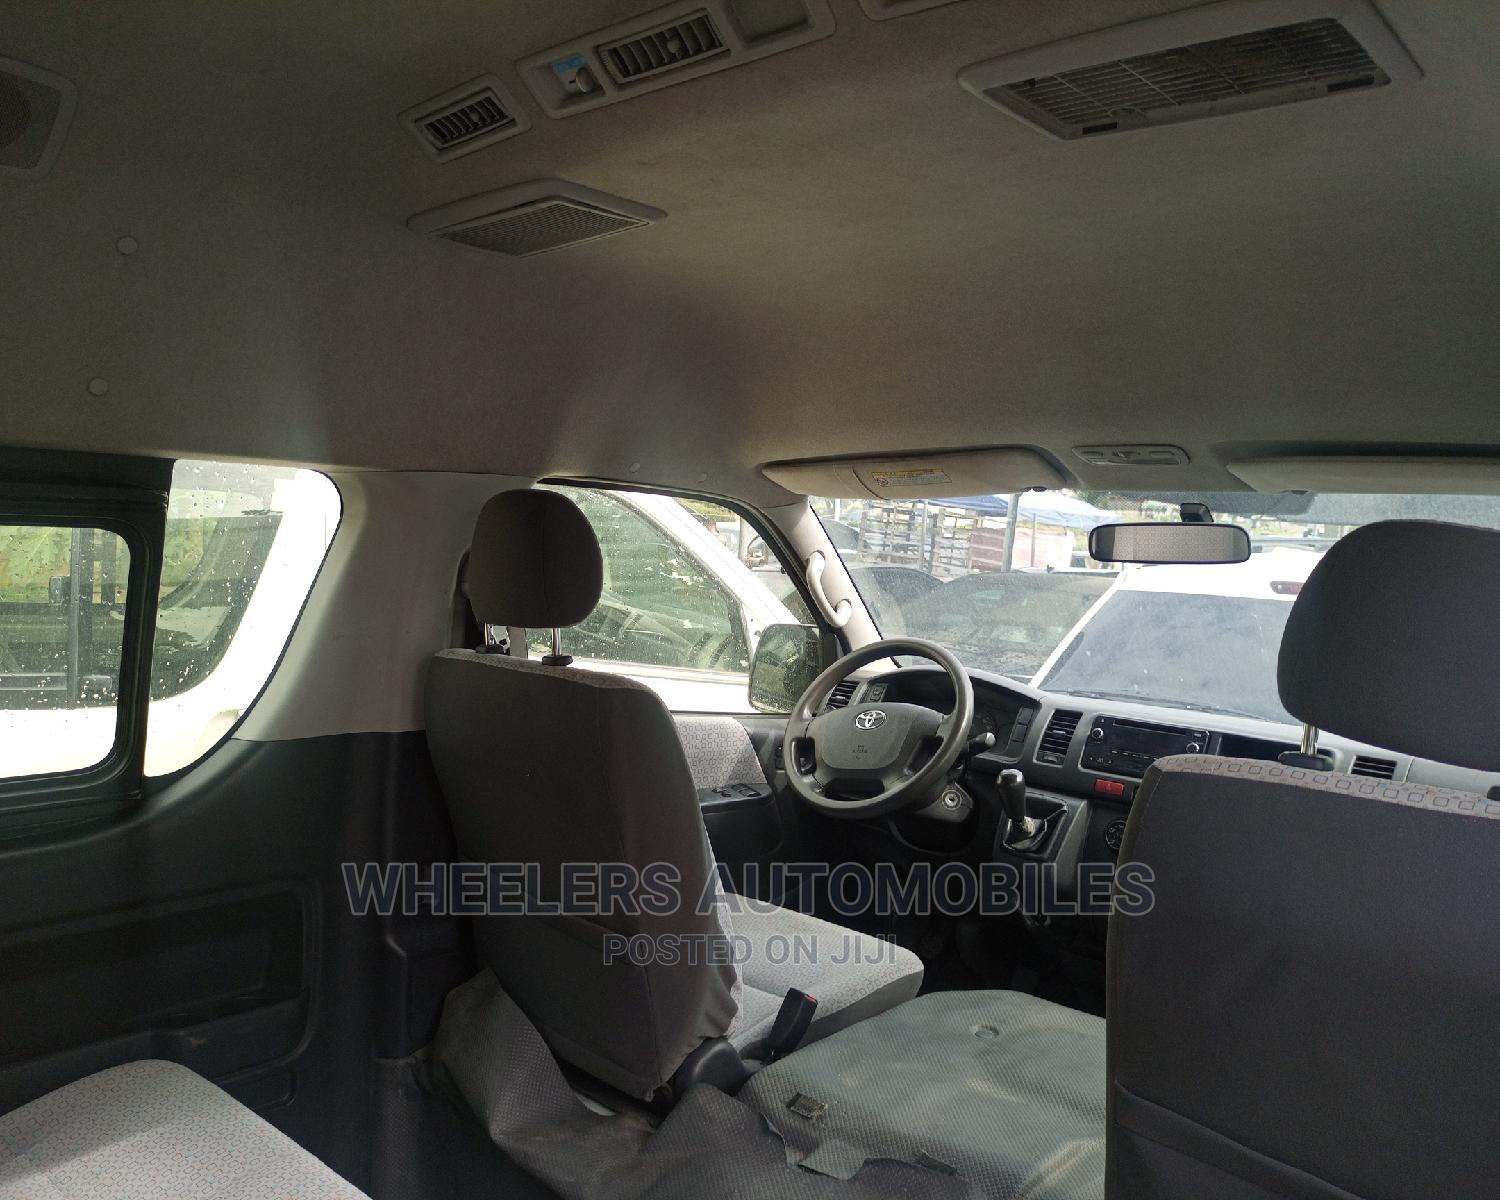 2014 Hummer Bus | Buses & Microbuses for sale in Amuwo-Odofin, Lagos State, Nigeria